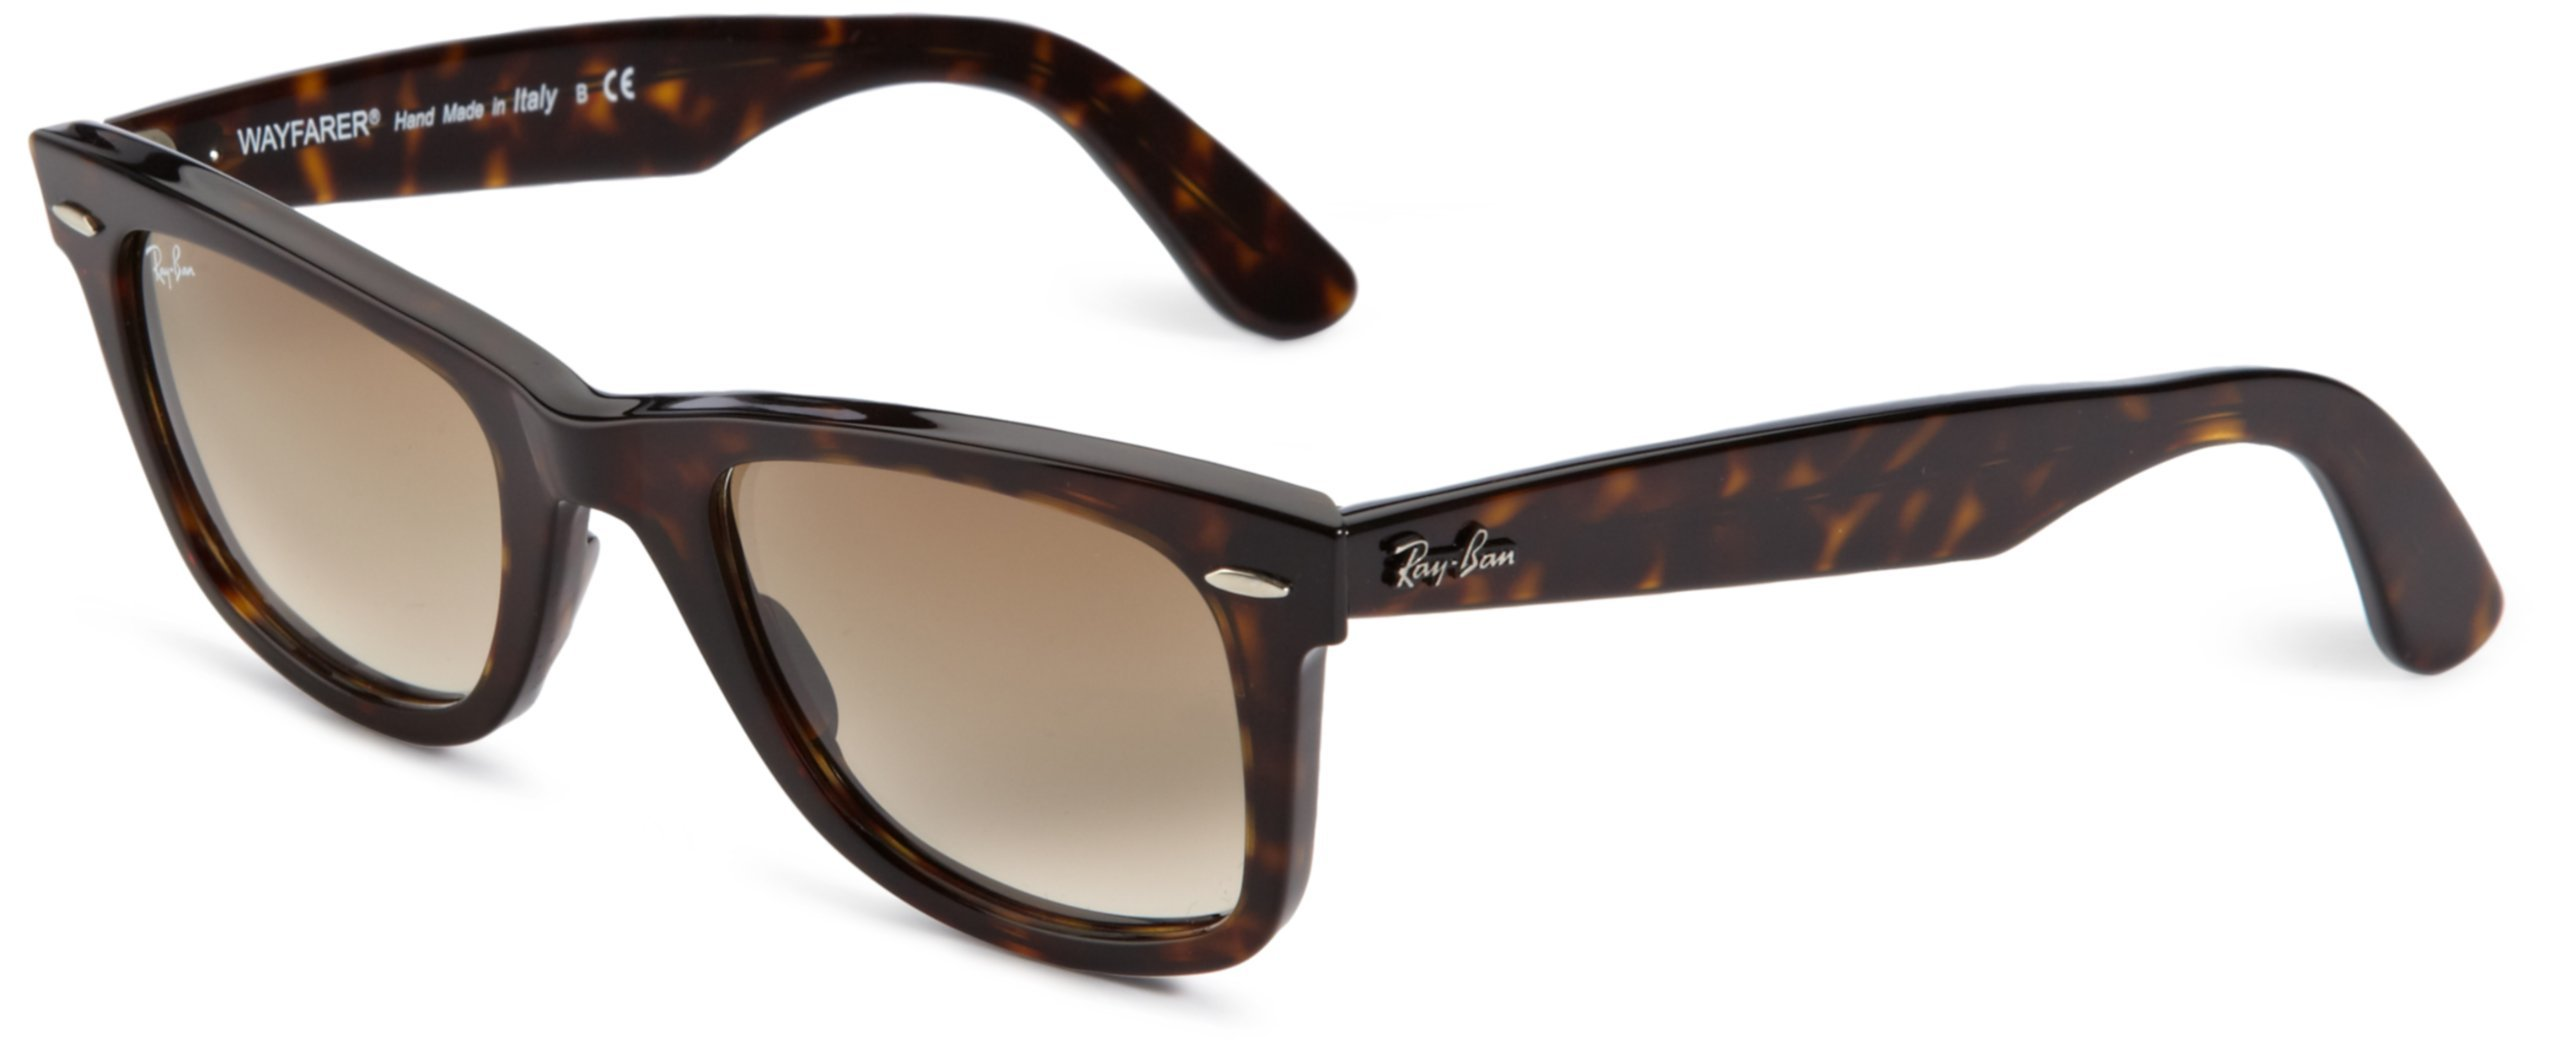 Ray-Ban 0RB2140 Original Wayfarer Sunglasses, Tortoise, 50mm by RAY-BAN